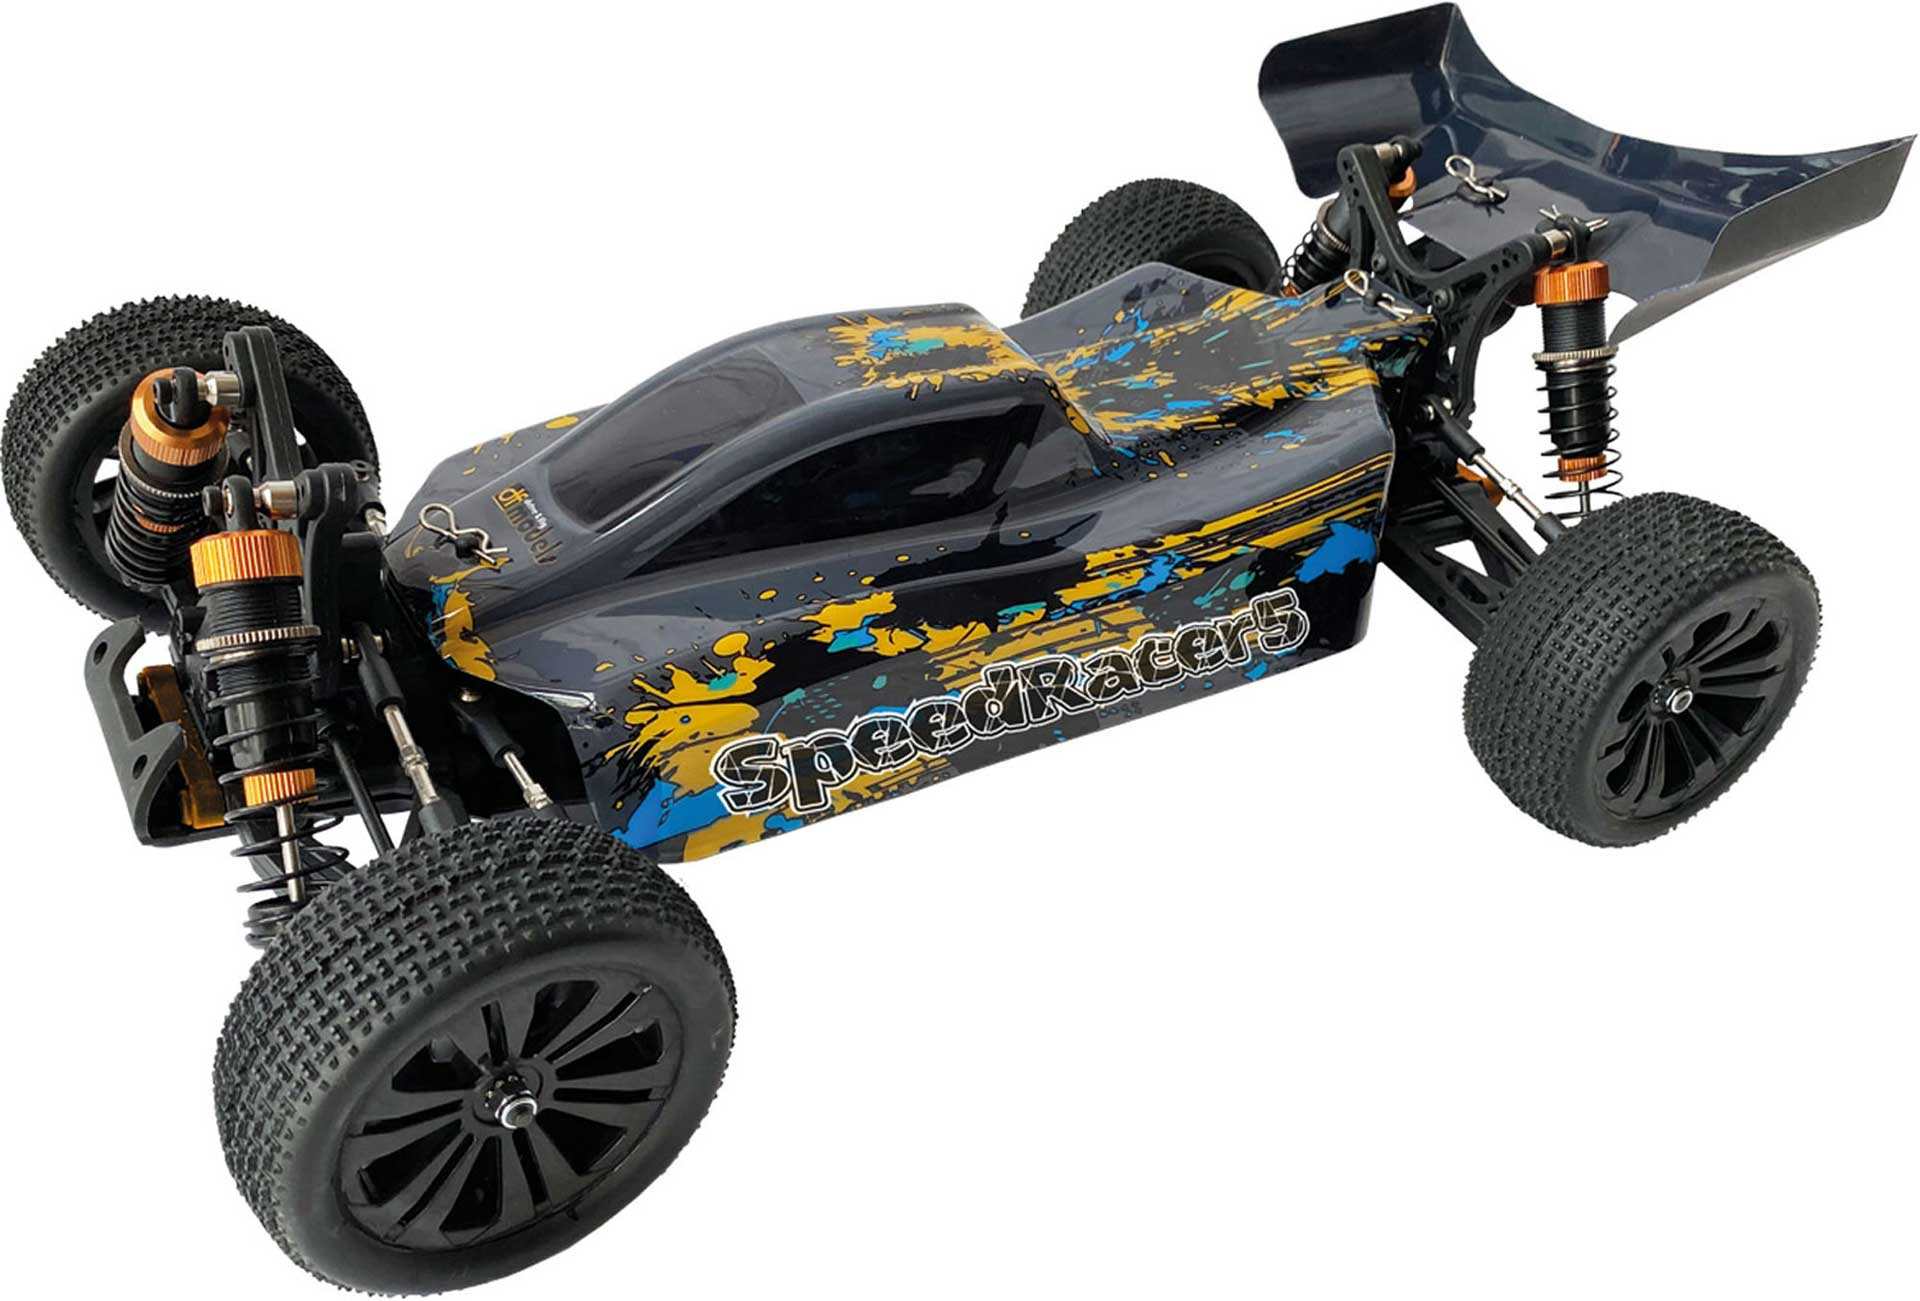 DRIVE & FLY MODELS SPEED RACER 5 BUGGY BRUSHLESS RTR 4WD 1/10